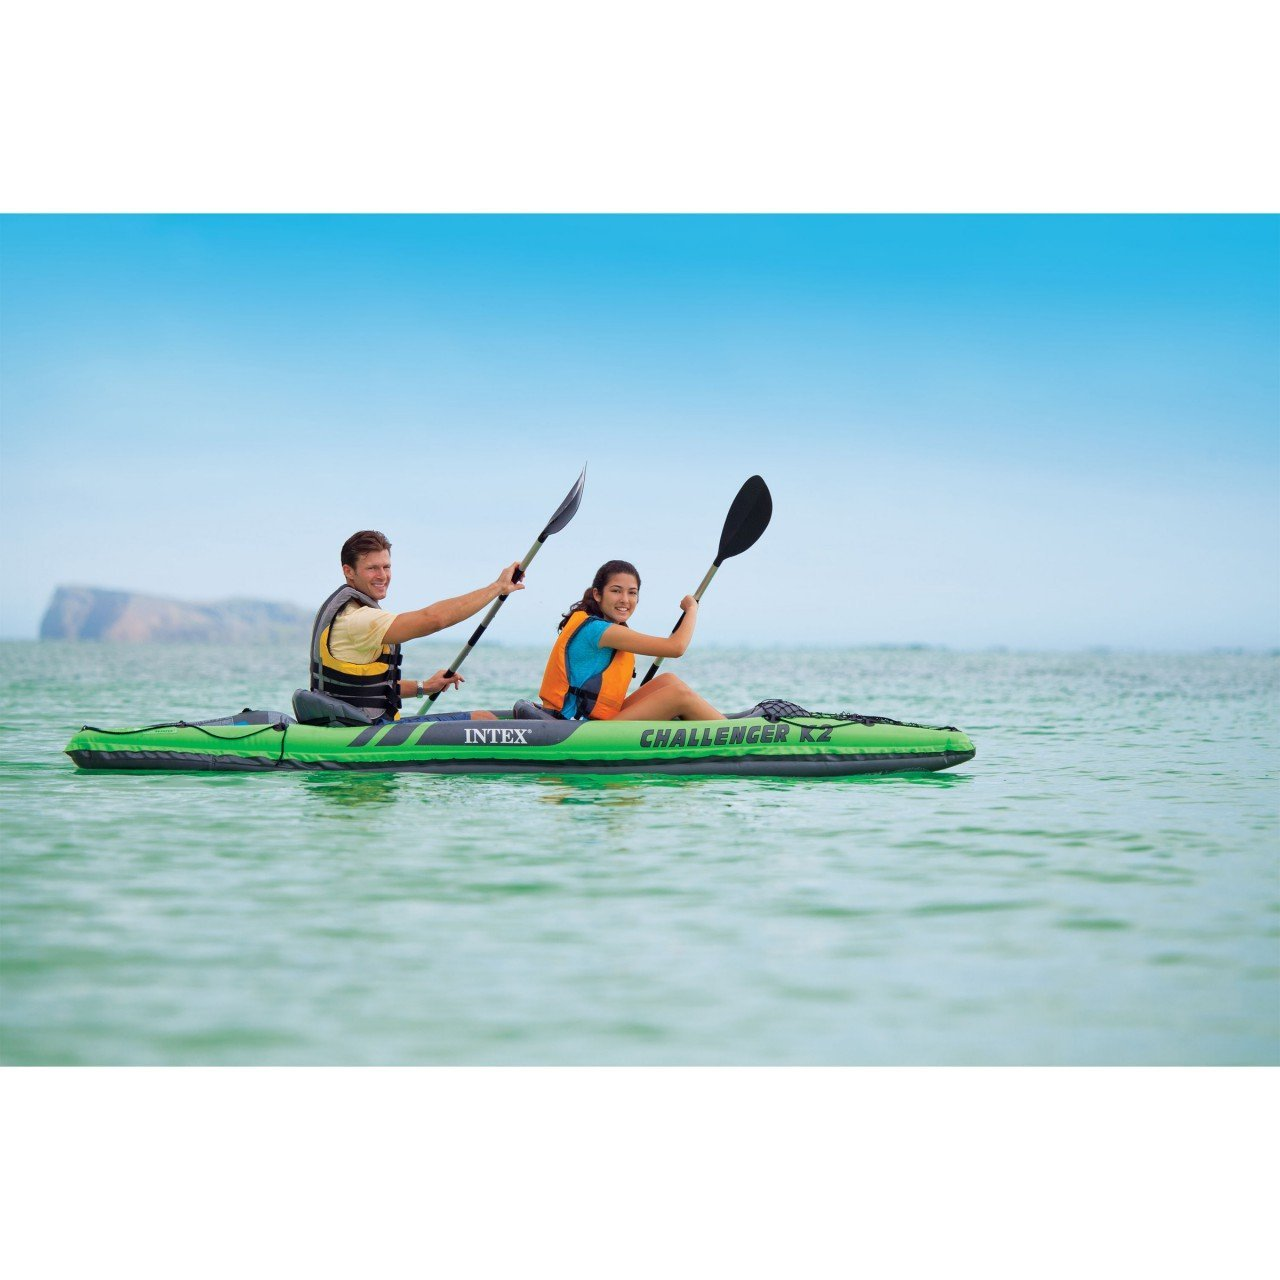 Intex Challenger K2 Kayak of The Top-Rated Kayak In 2017